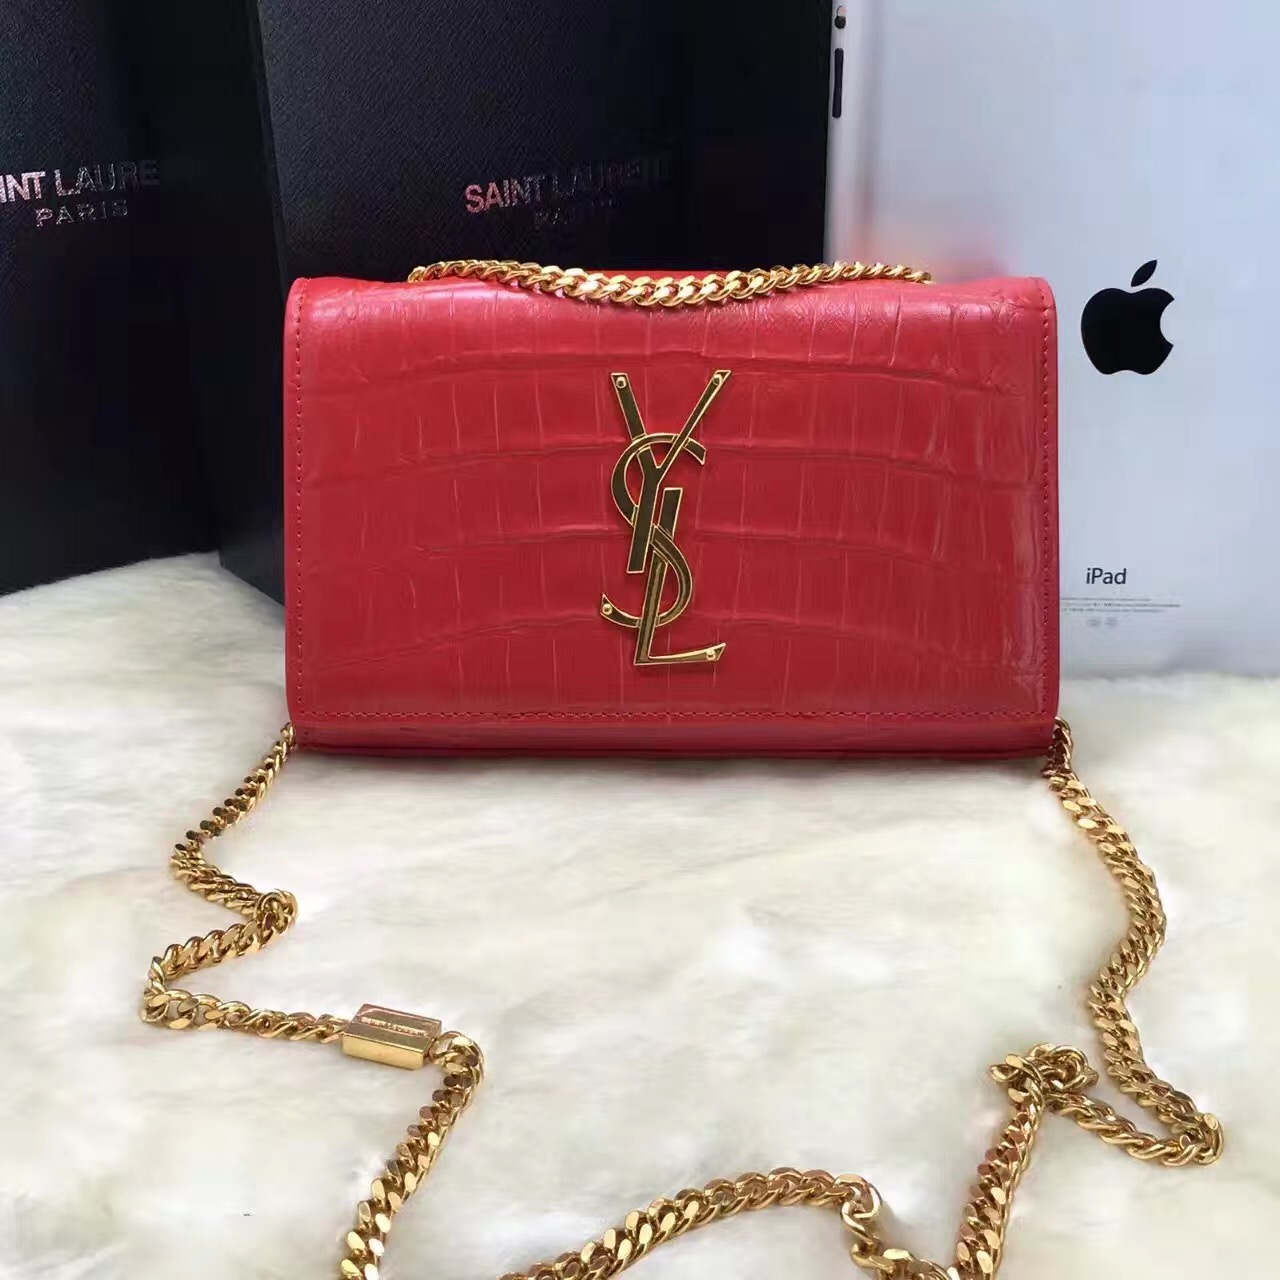 Authentic New Ysl Saint Lau Handbag 354119 C150j 6805 Calfskin Red Reebonz  Canada. Yves Saint Lau Shoulder Bags Vine c459a7ac6d18d